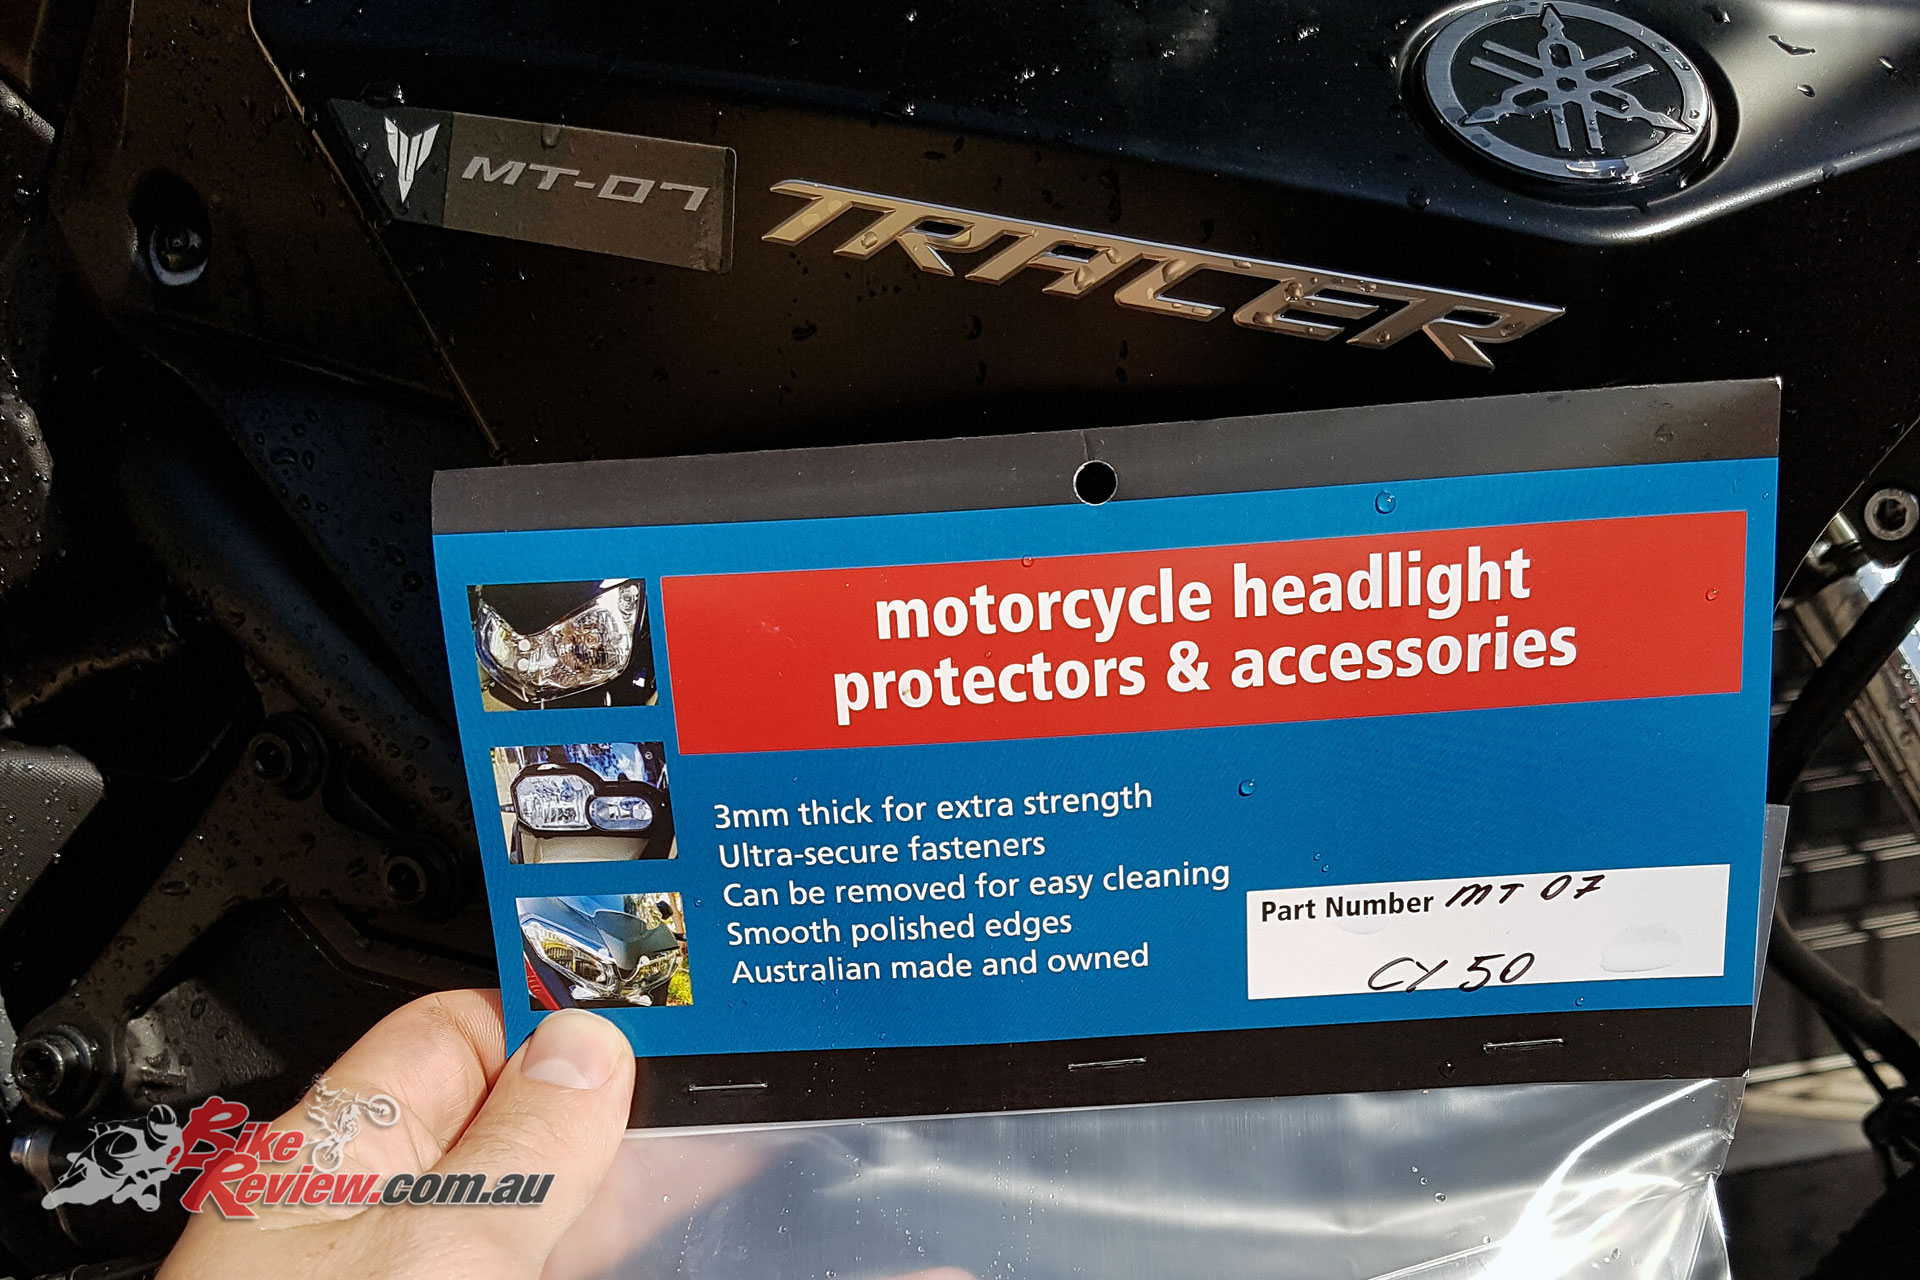 Our AMHP headlight protectors arrive!